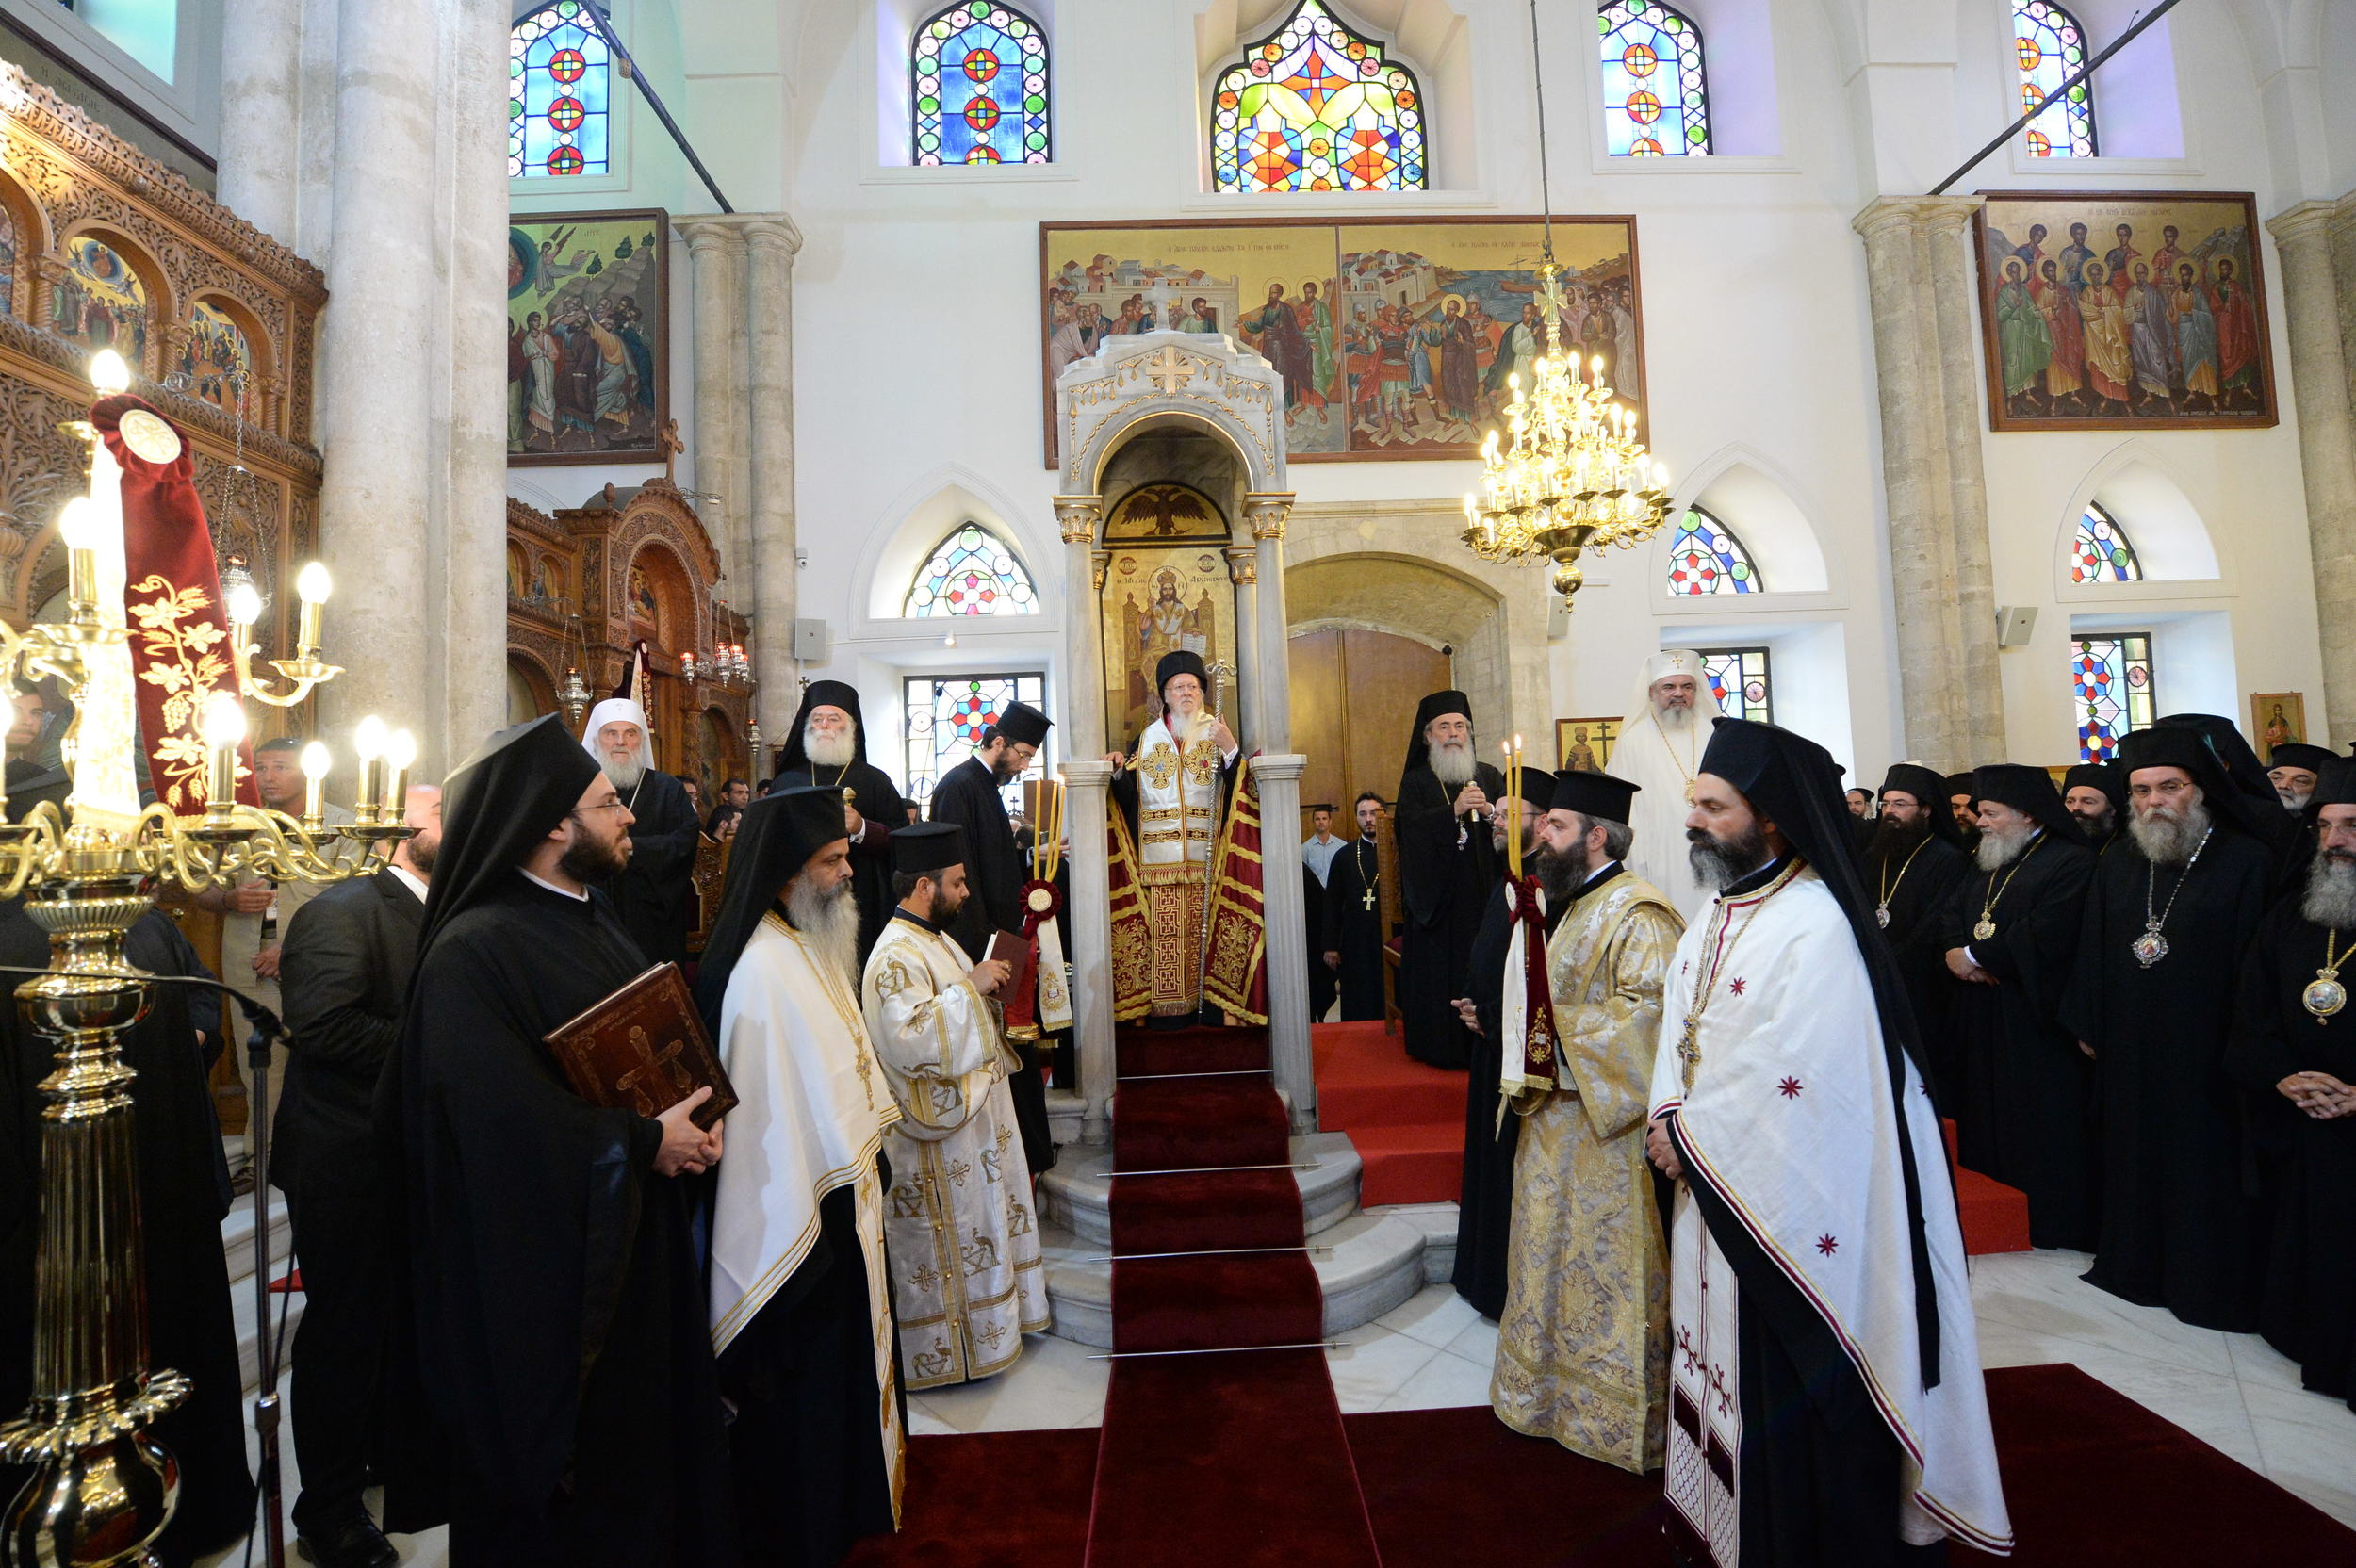 His All-Holiness Ecumenical Patriarch Bartholomew presides over the Doxology and Vespers of Pentecost at the Church of St. Titus in Heraklion, Crete. PHOTOS: Copyright: John Mindala.